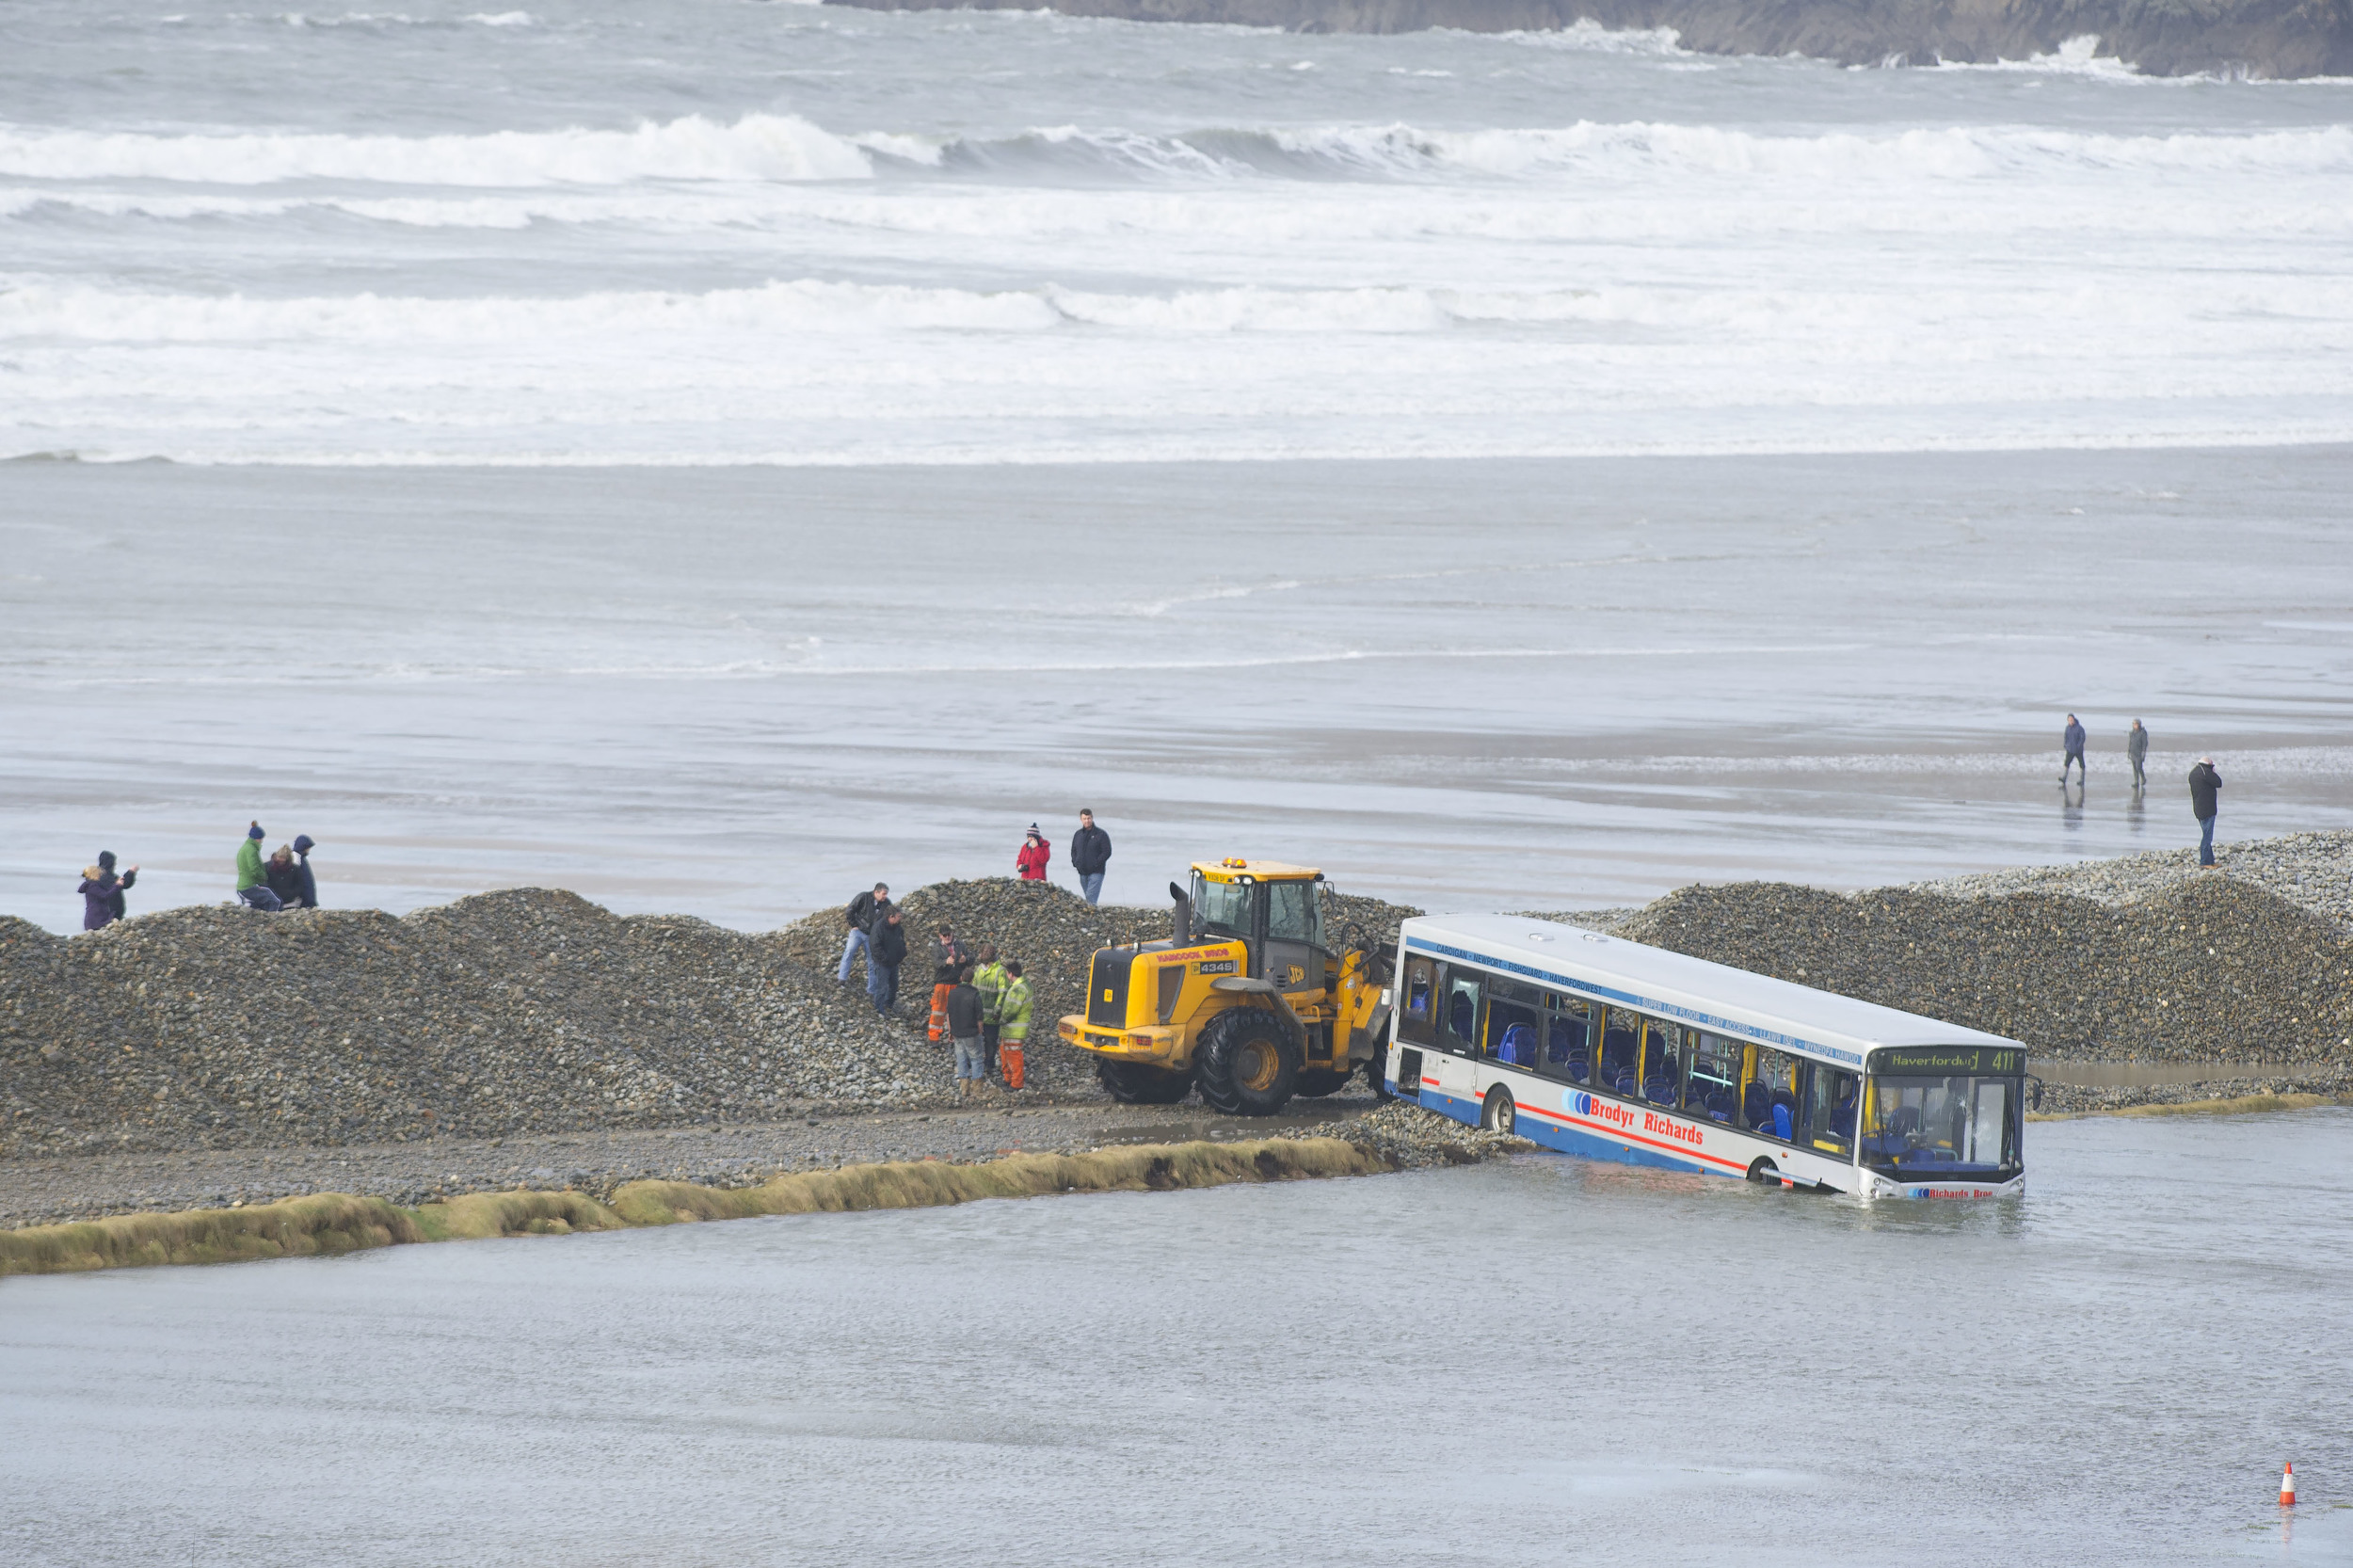 A bus is partially  submerged in water on the A487  in Newgale, West Wales, after heavy rain, severe flooding and strong waves on the night of Saturday February 1.